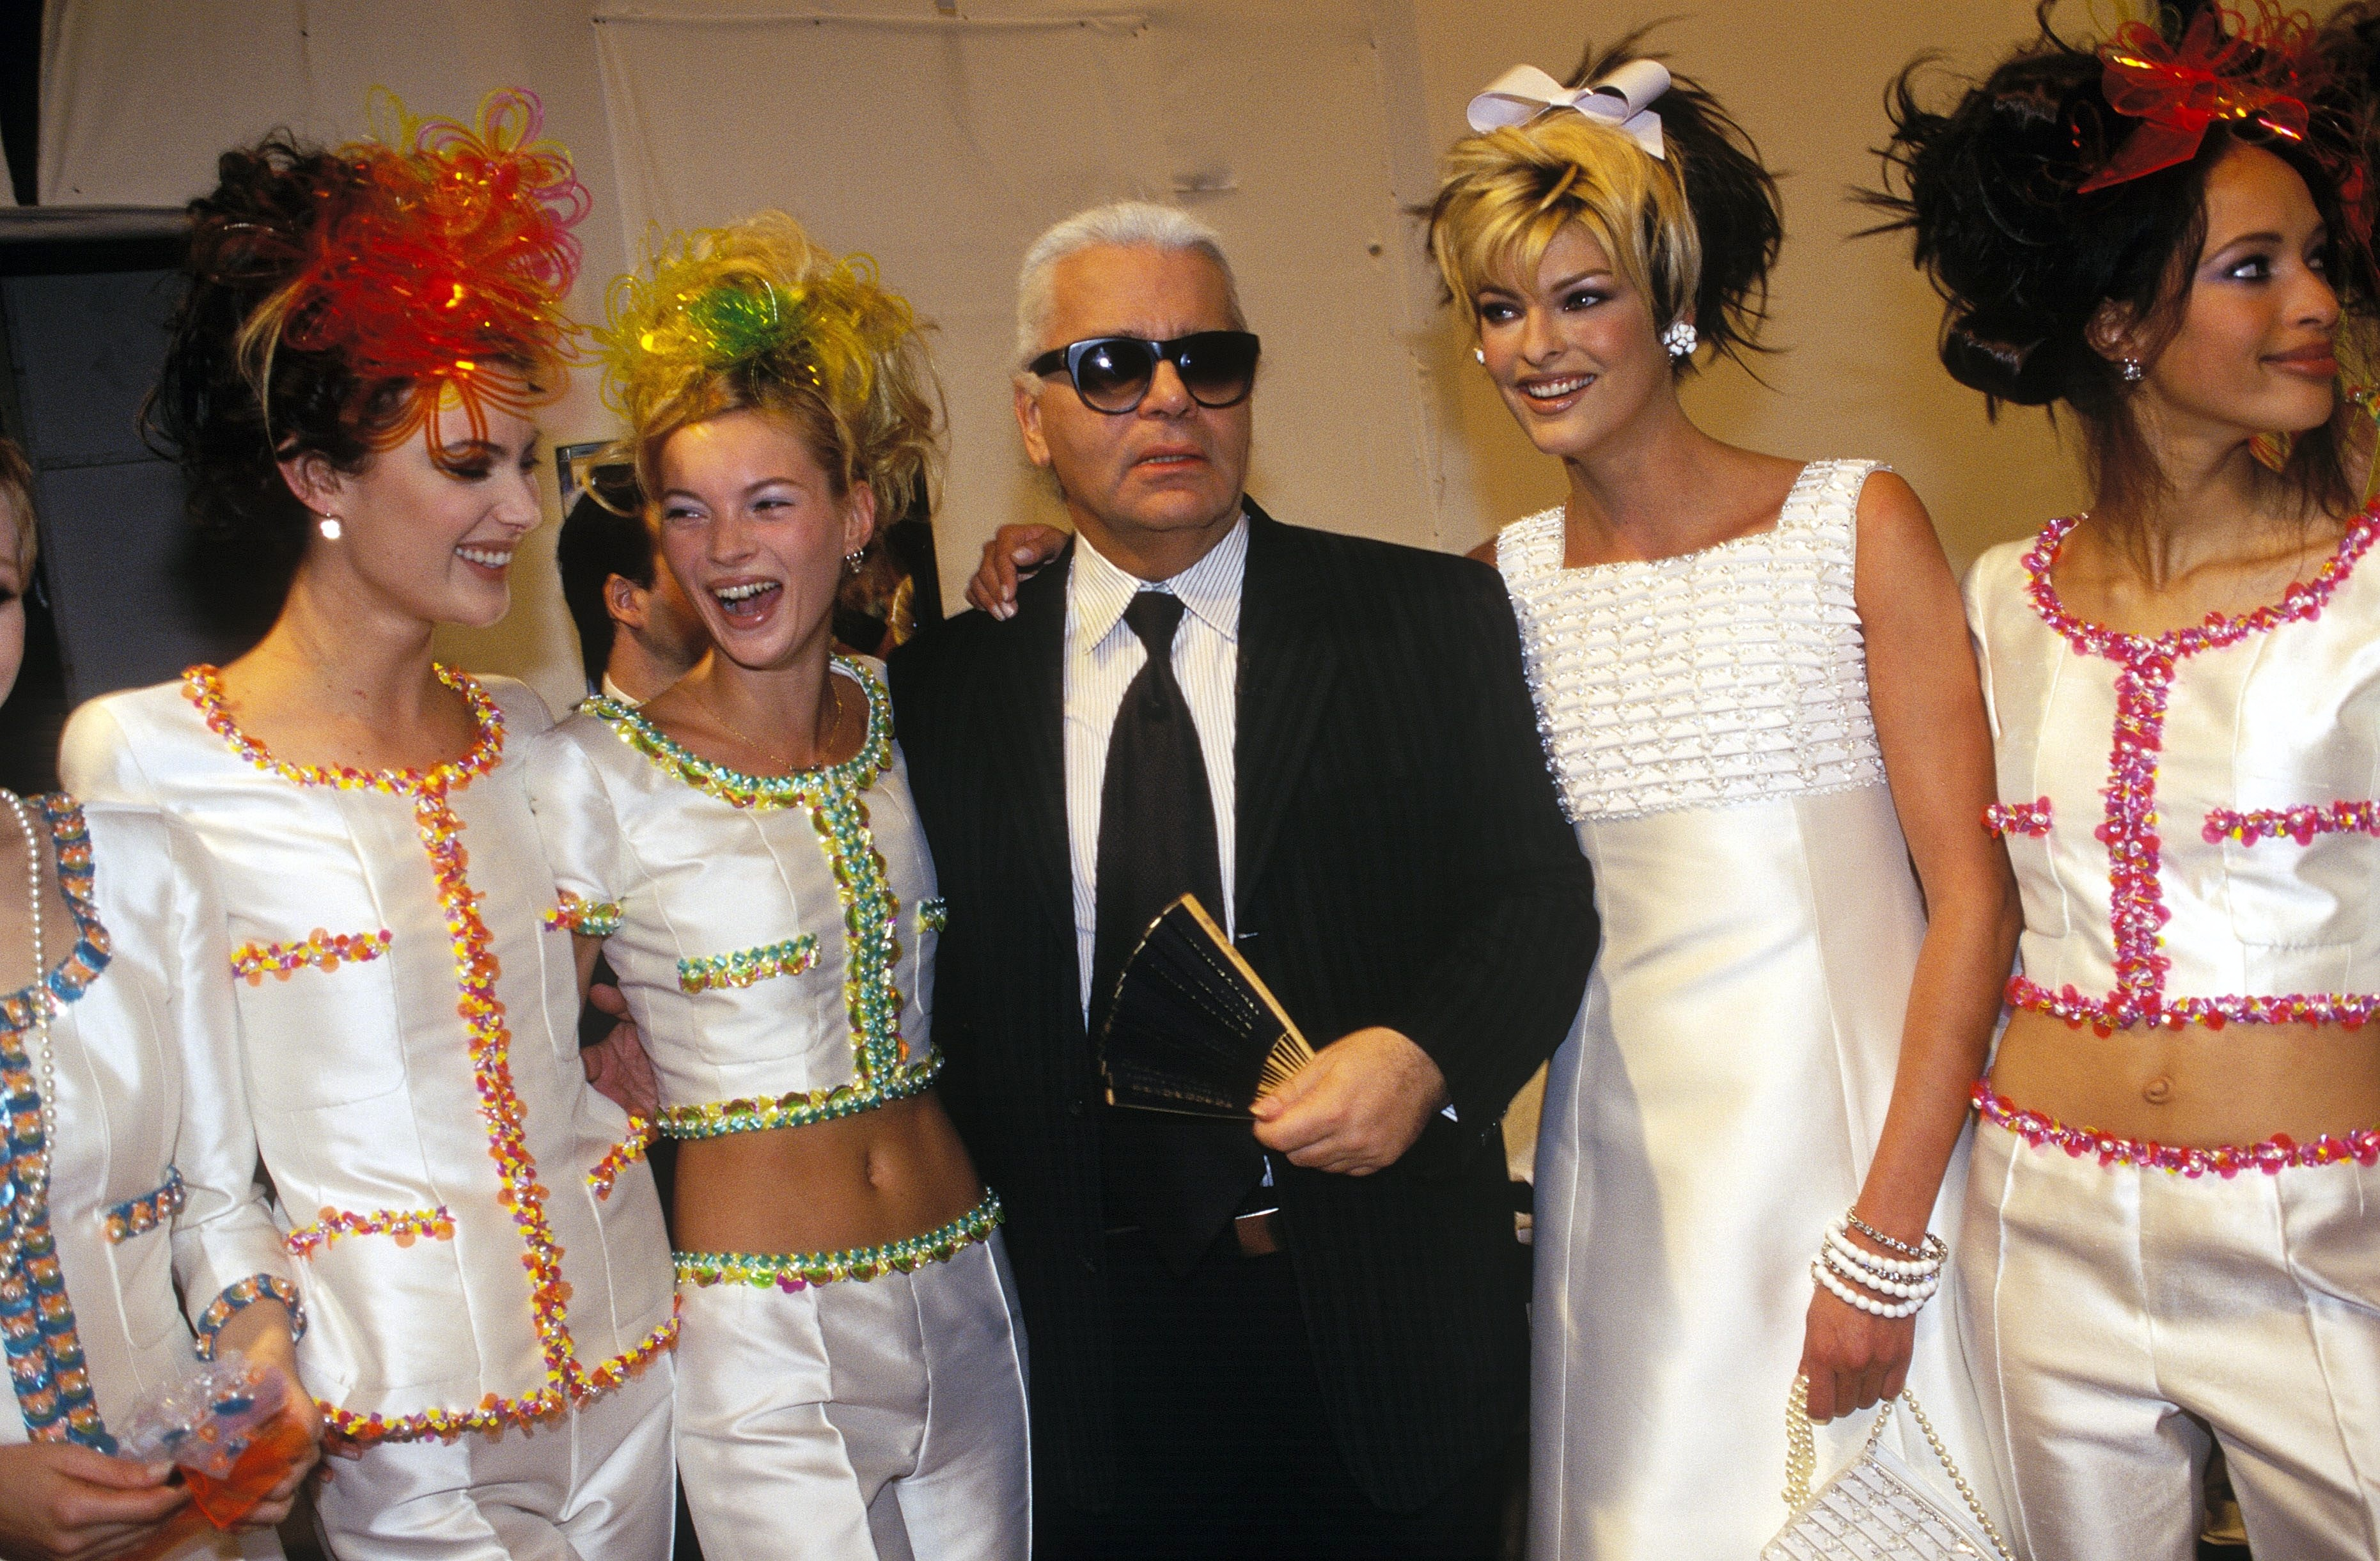 Karl Lagerfeld's long history of disparaging fat women